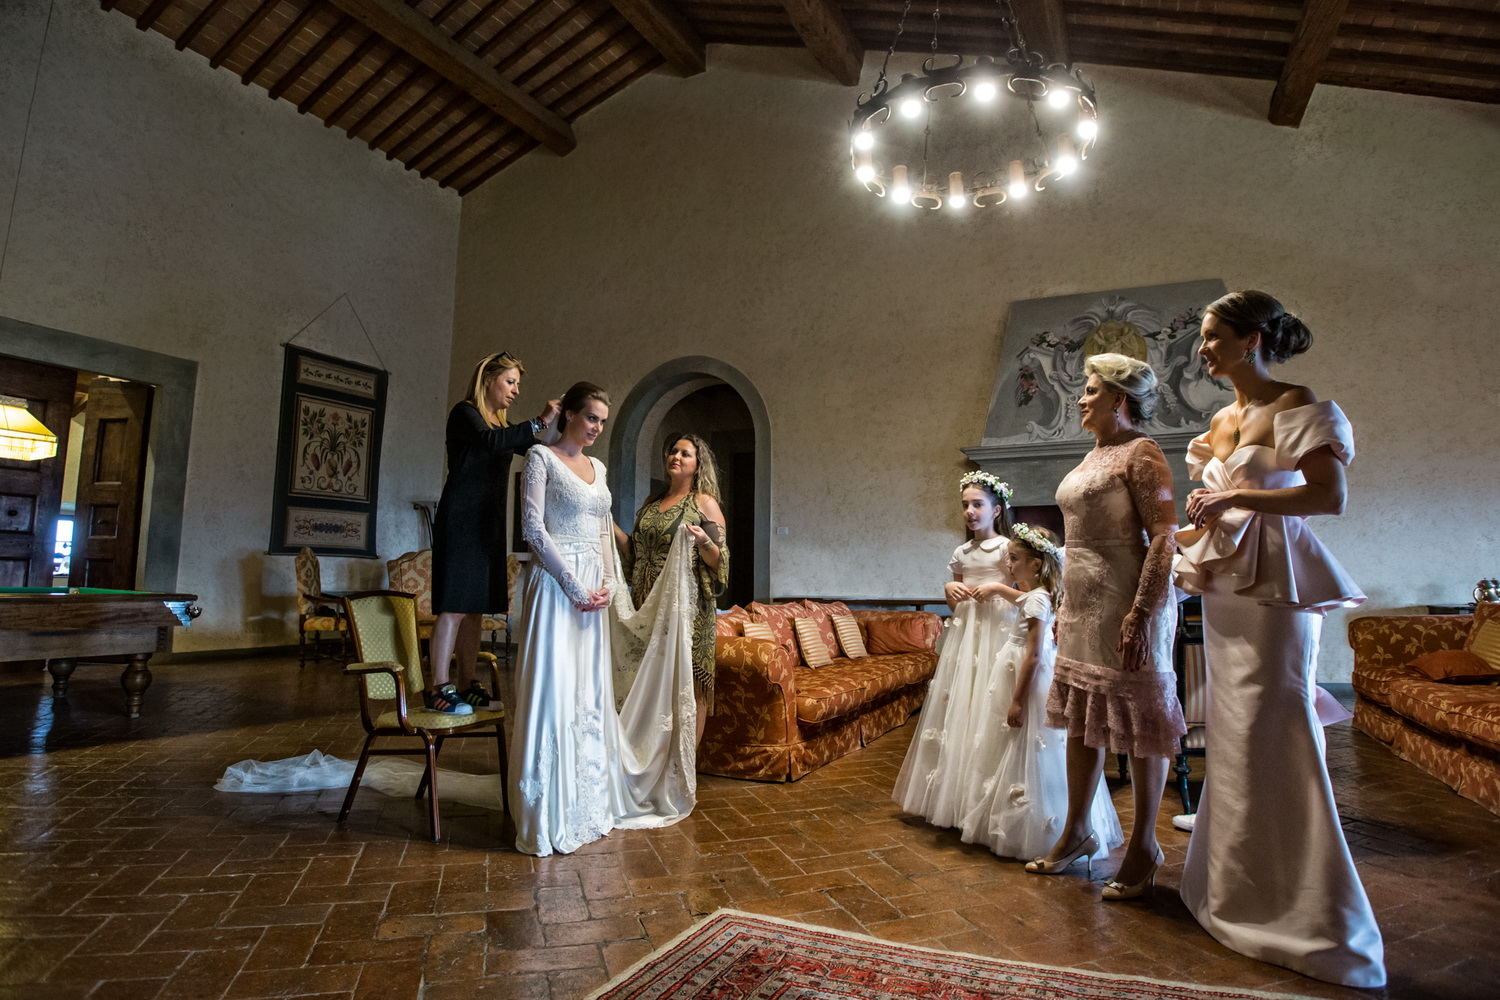 Destination Wedding Toscana | Caroline e Fernando destination wedding na toscana | caroline e fernando Destination Wedding na Toscana | Caroline e Fernando marco zammarchi destination wedding 09